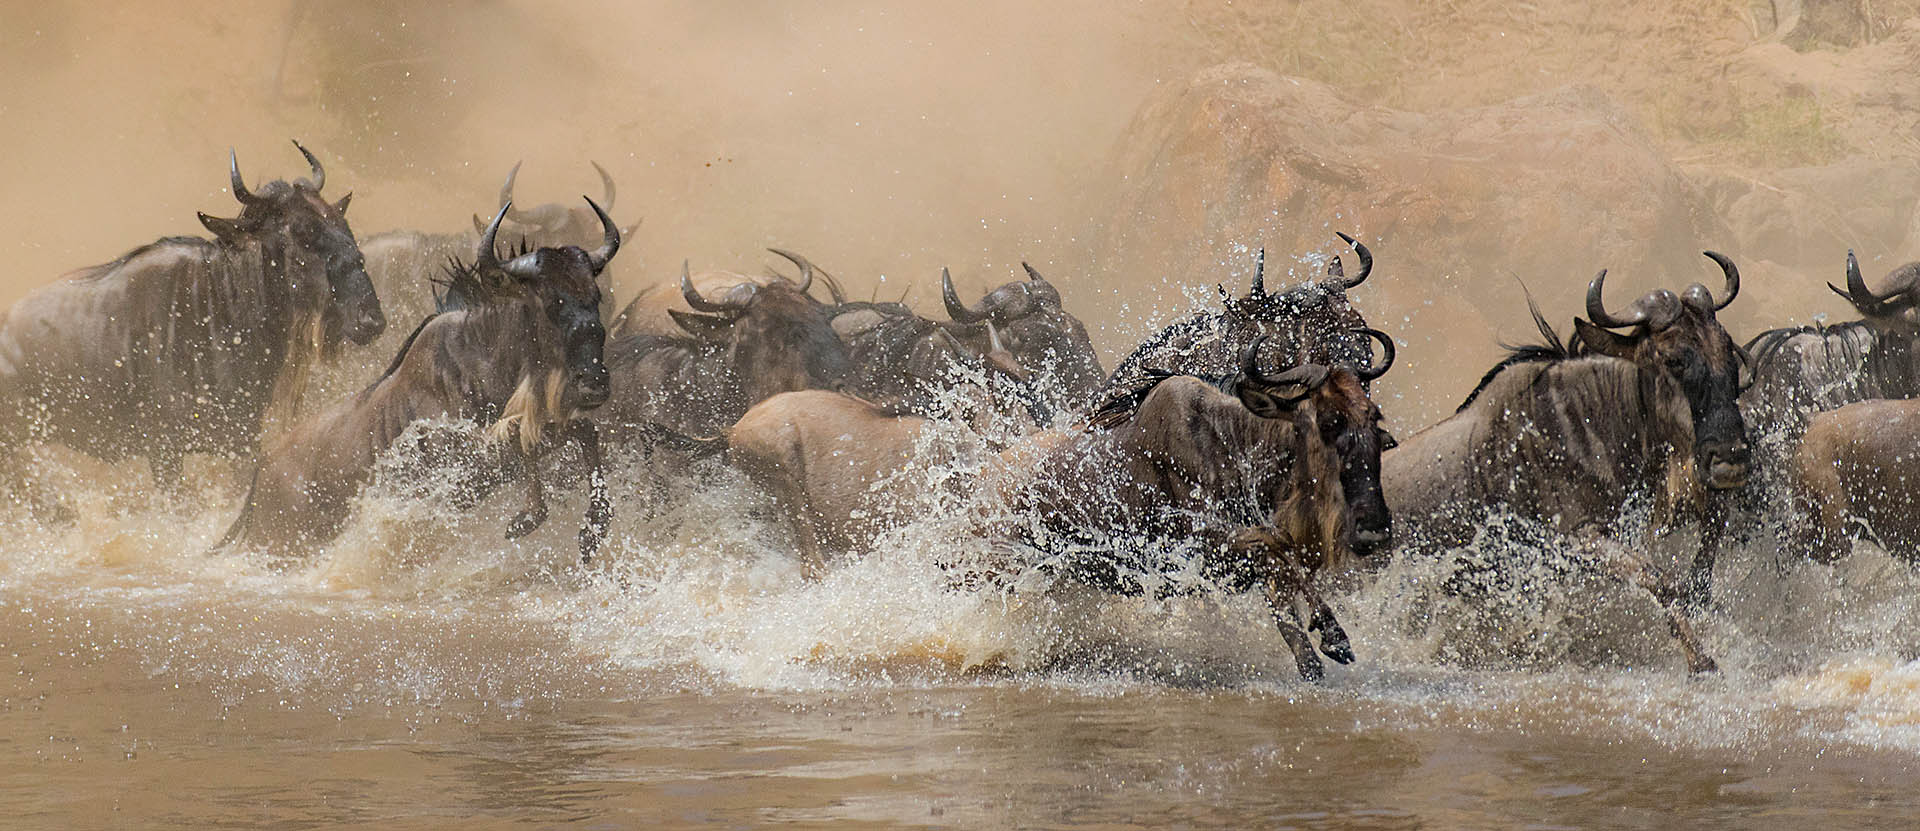 Wildebeest cross the Mara river. Image by Todd Gustafson.